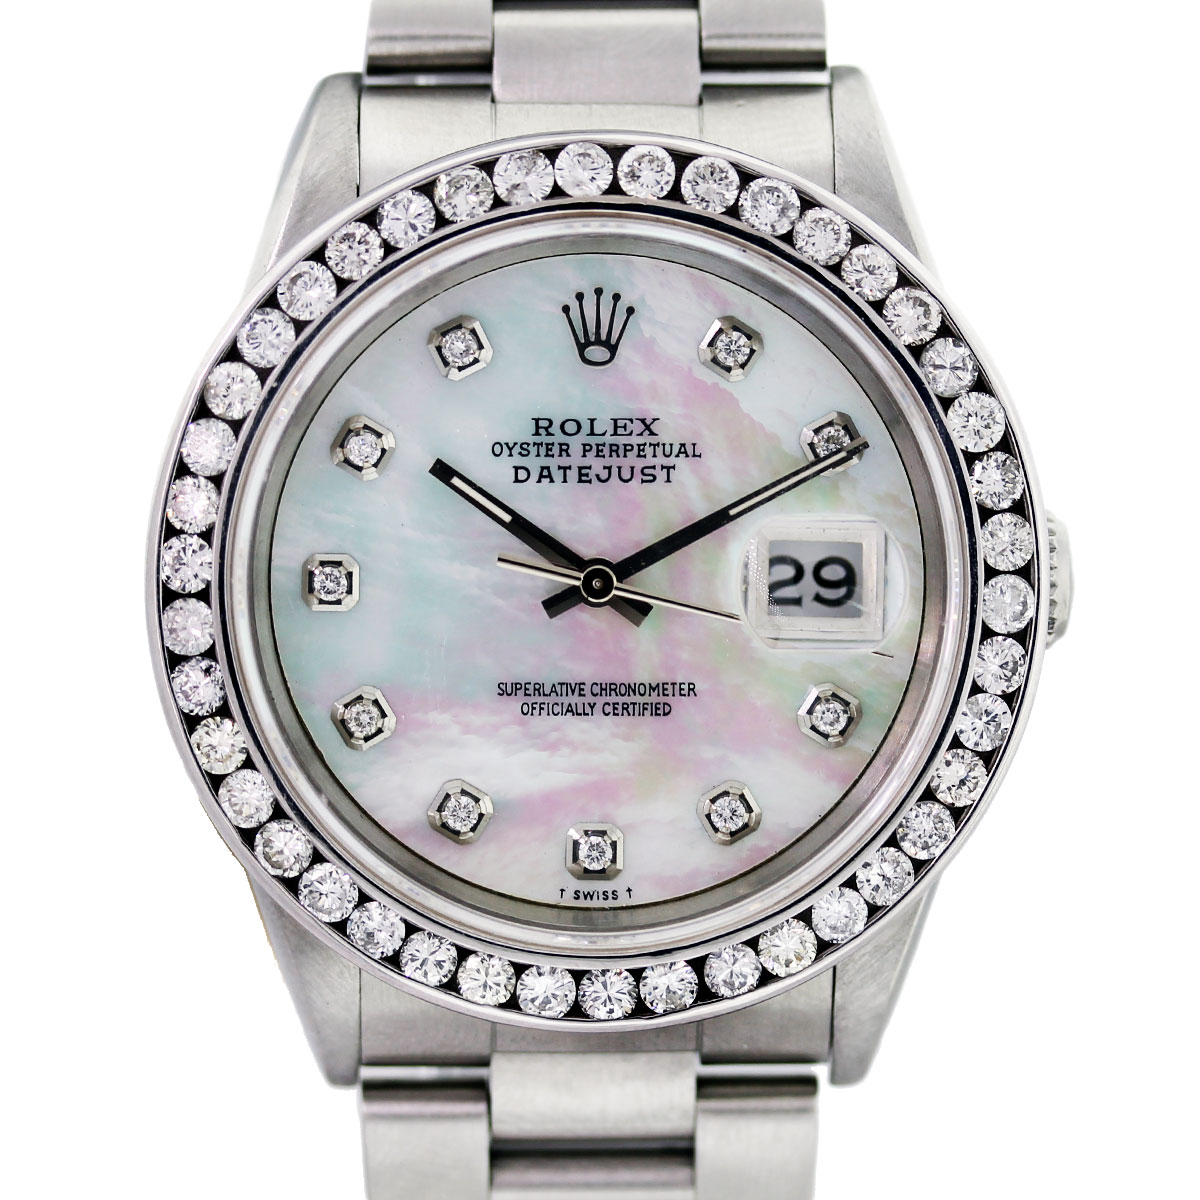 Rolex datejust 16220 mop diamond dial bezel watch boca raton for Diamond dial watch